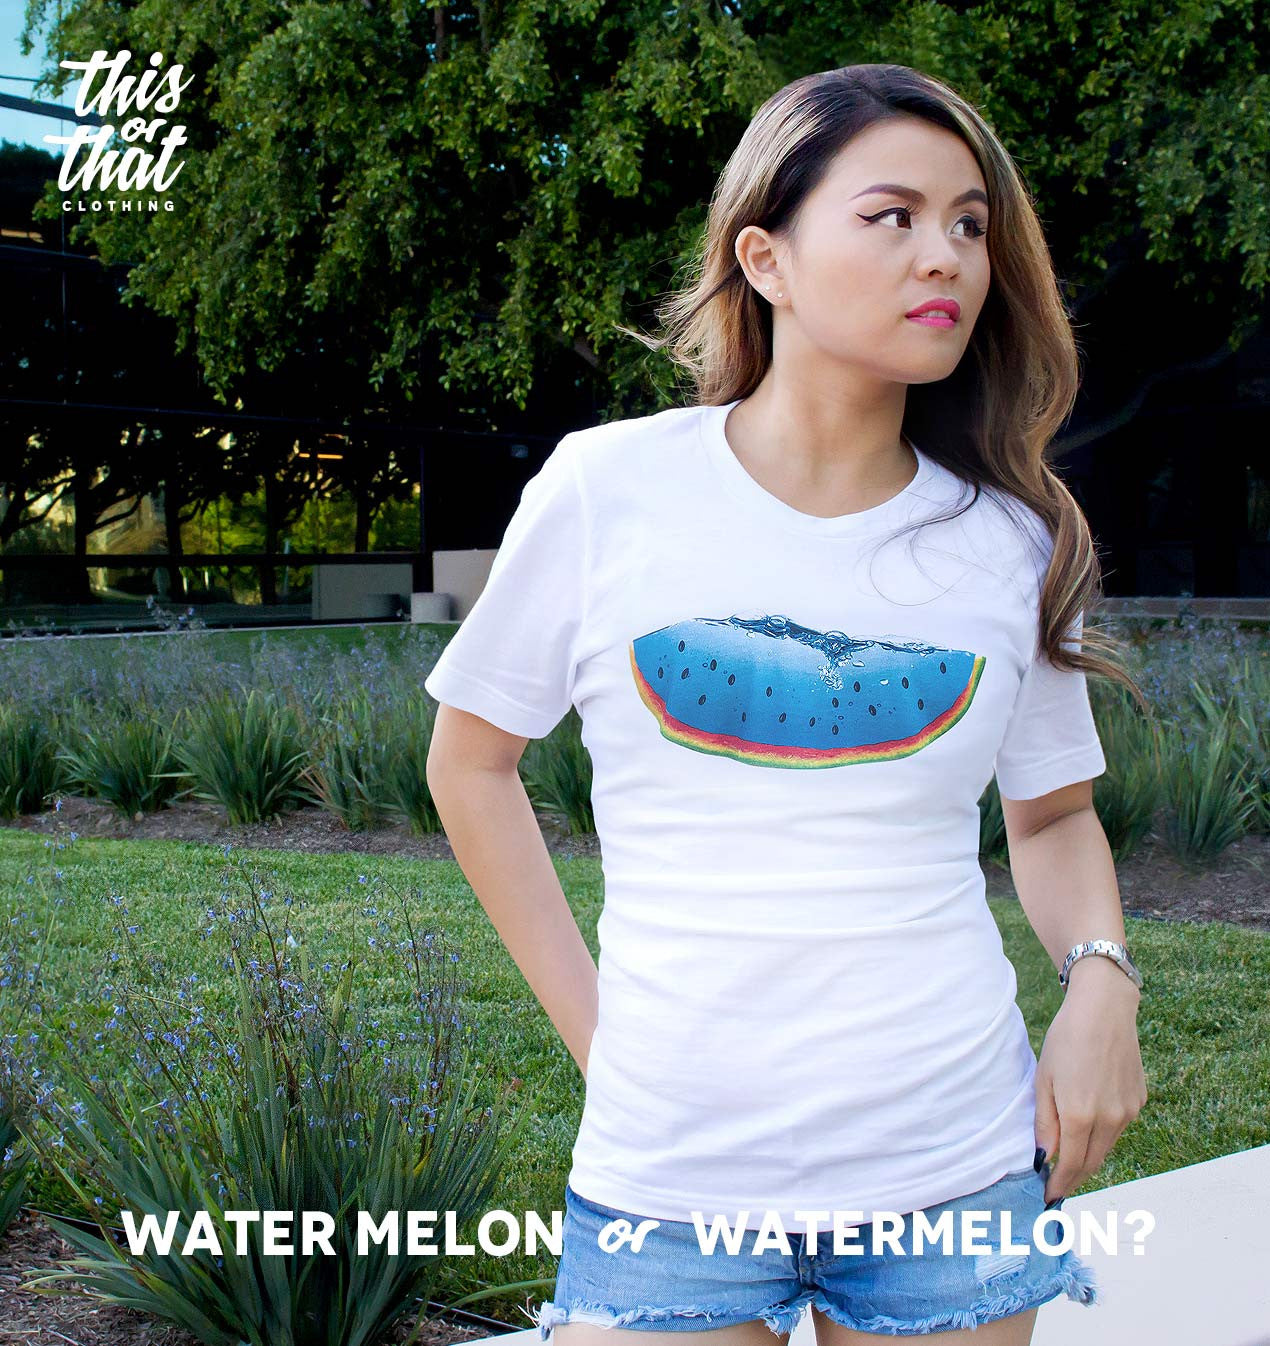 Water Melon or Watermelon? unisex t-shirt